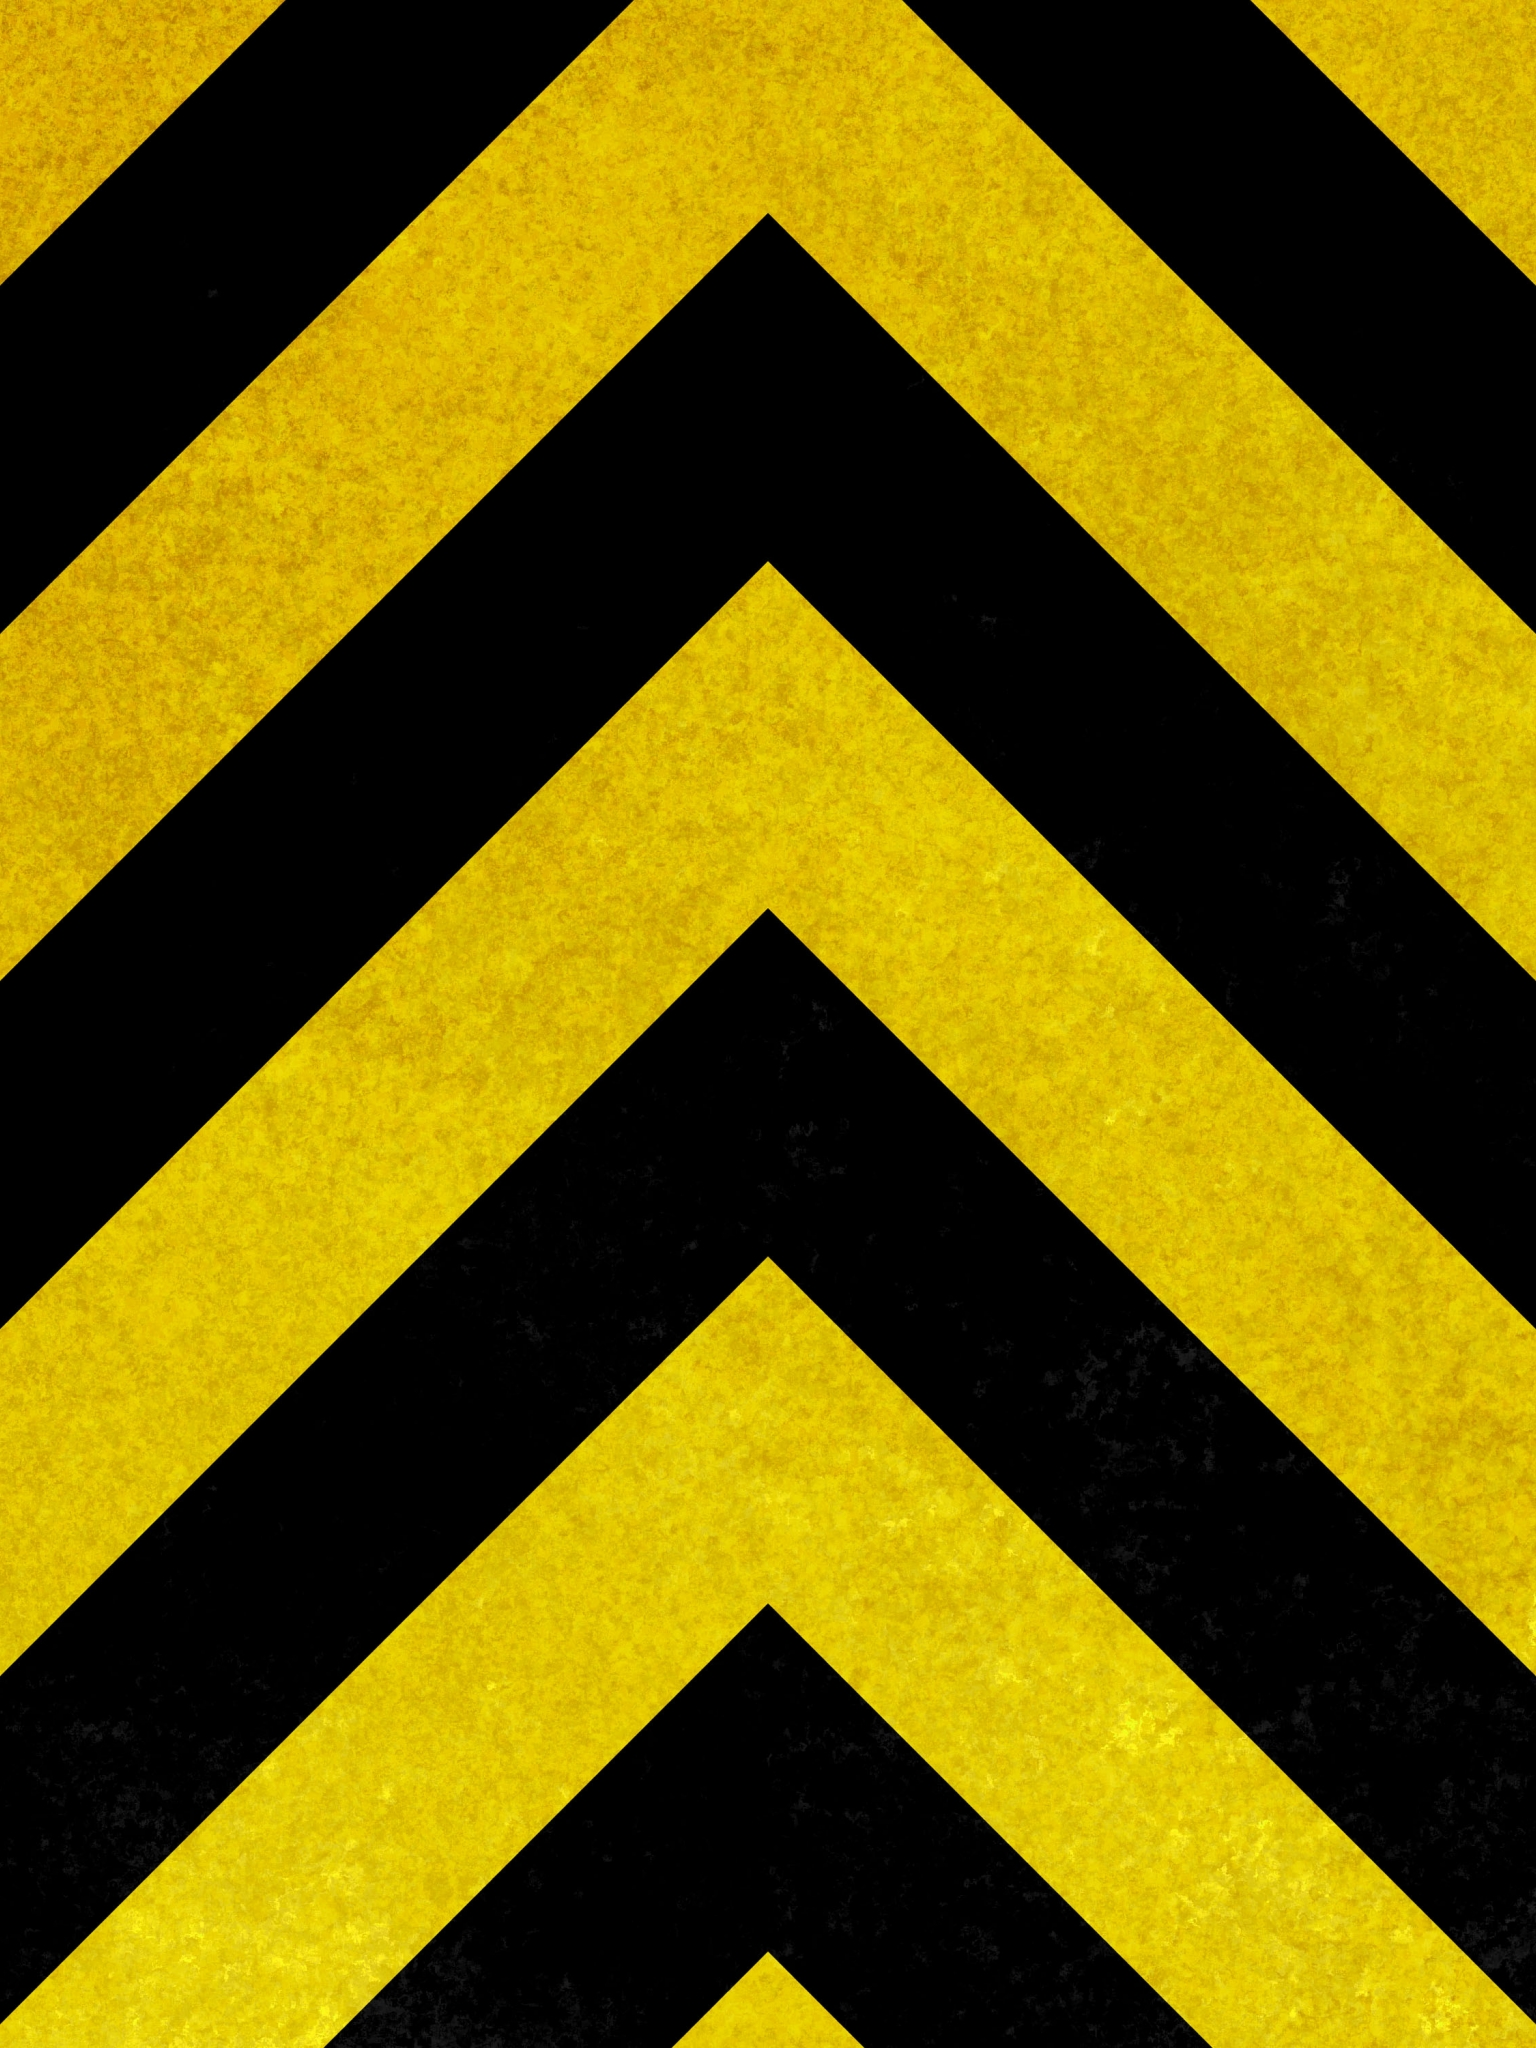 Free download Yellow hazard stripes texture PSDGraphics.